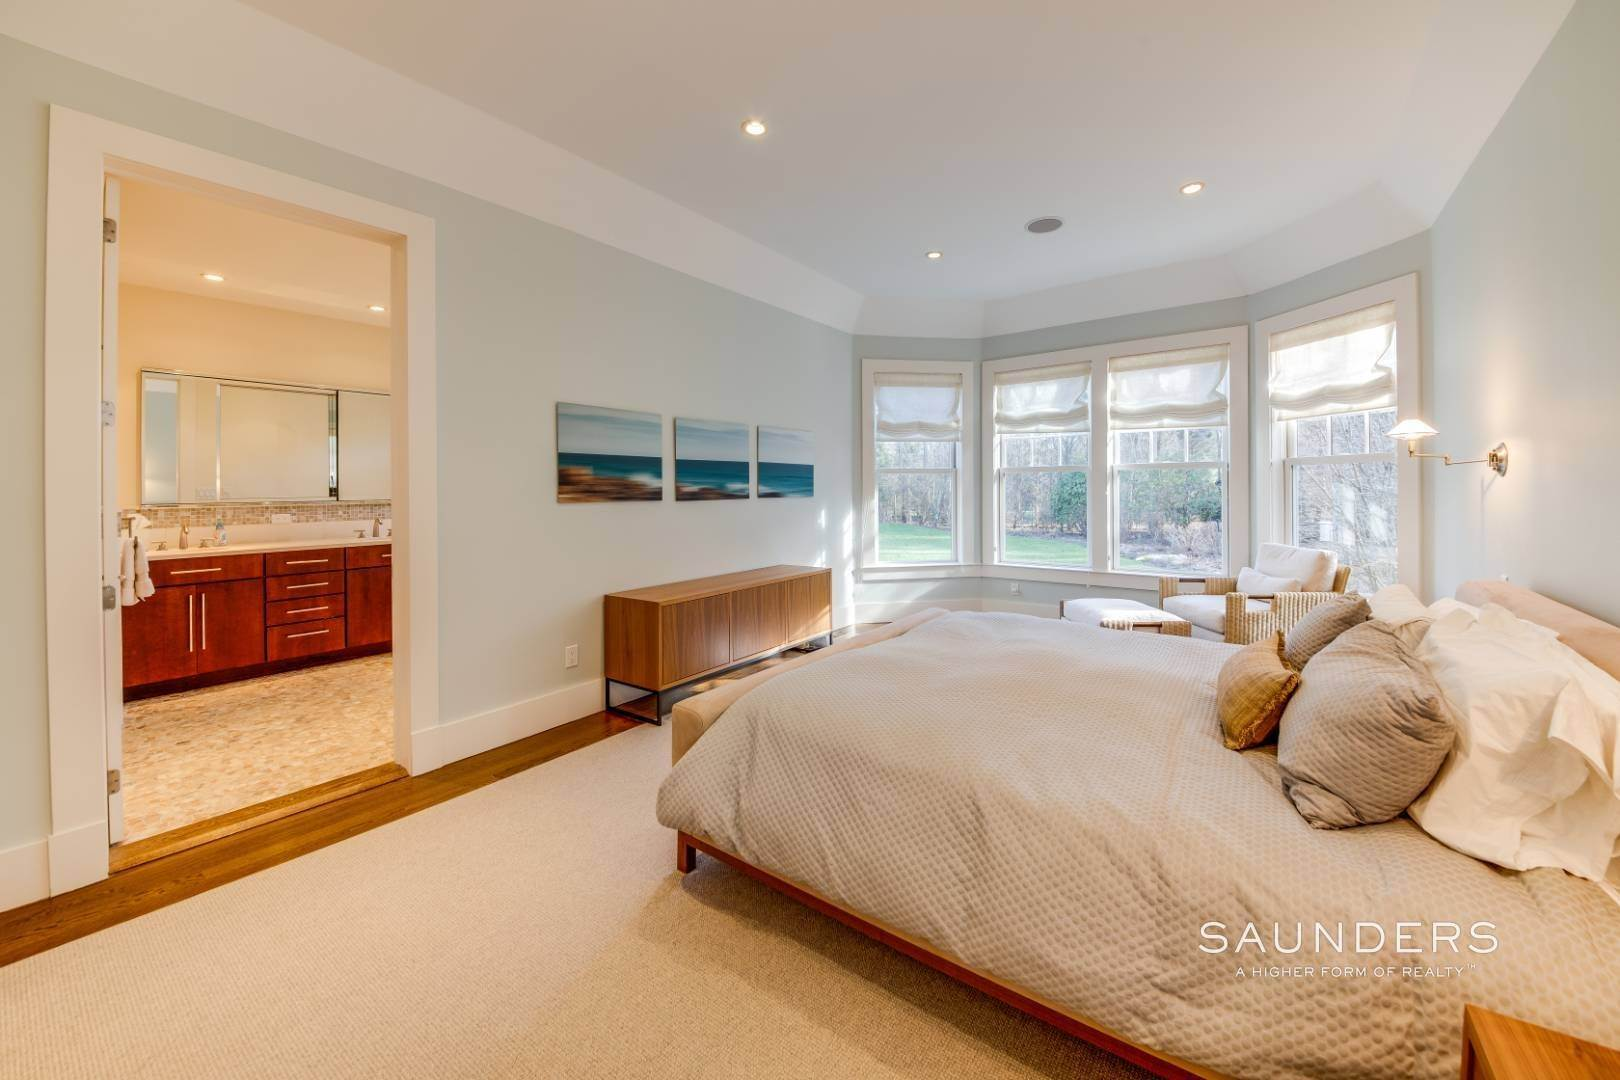 15. Single Family Homes for Sale at Wainscott South Traditional Near Beach Lane 10 Merriwood Drive, Wainscott, East Hampton Town, NY 11975